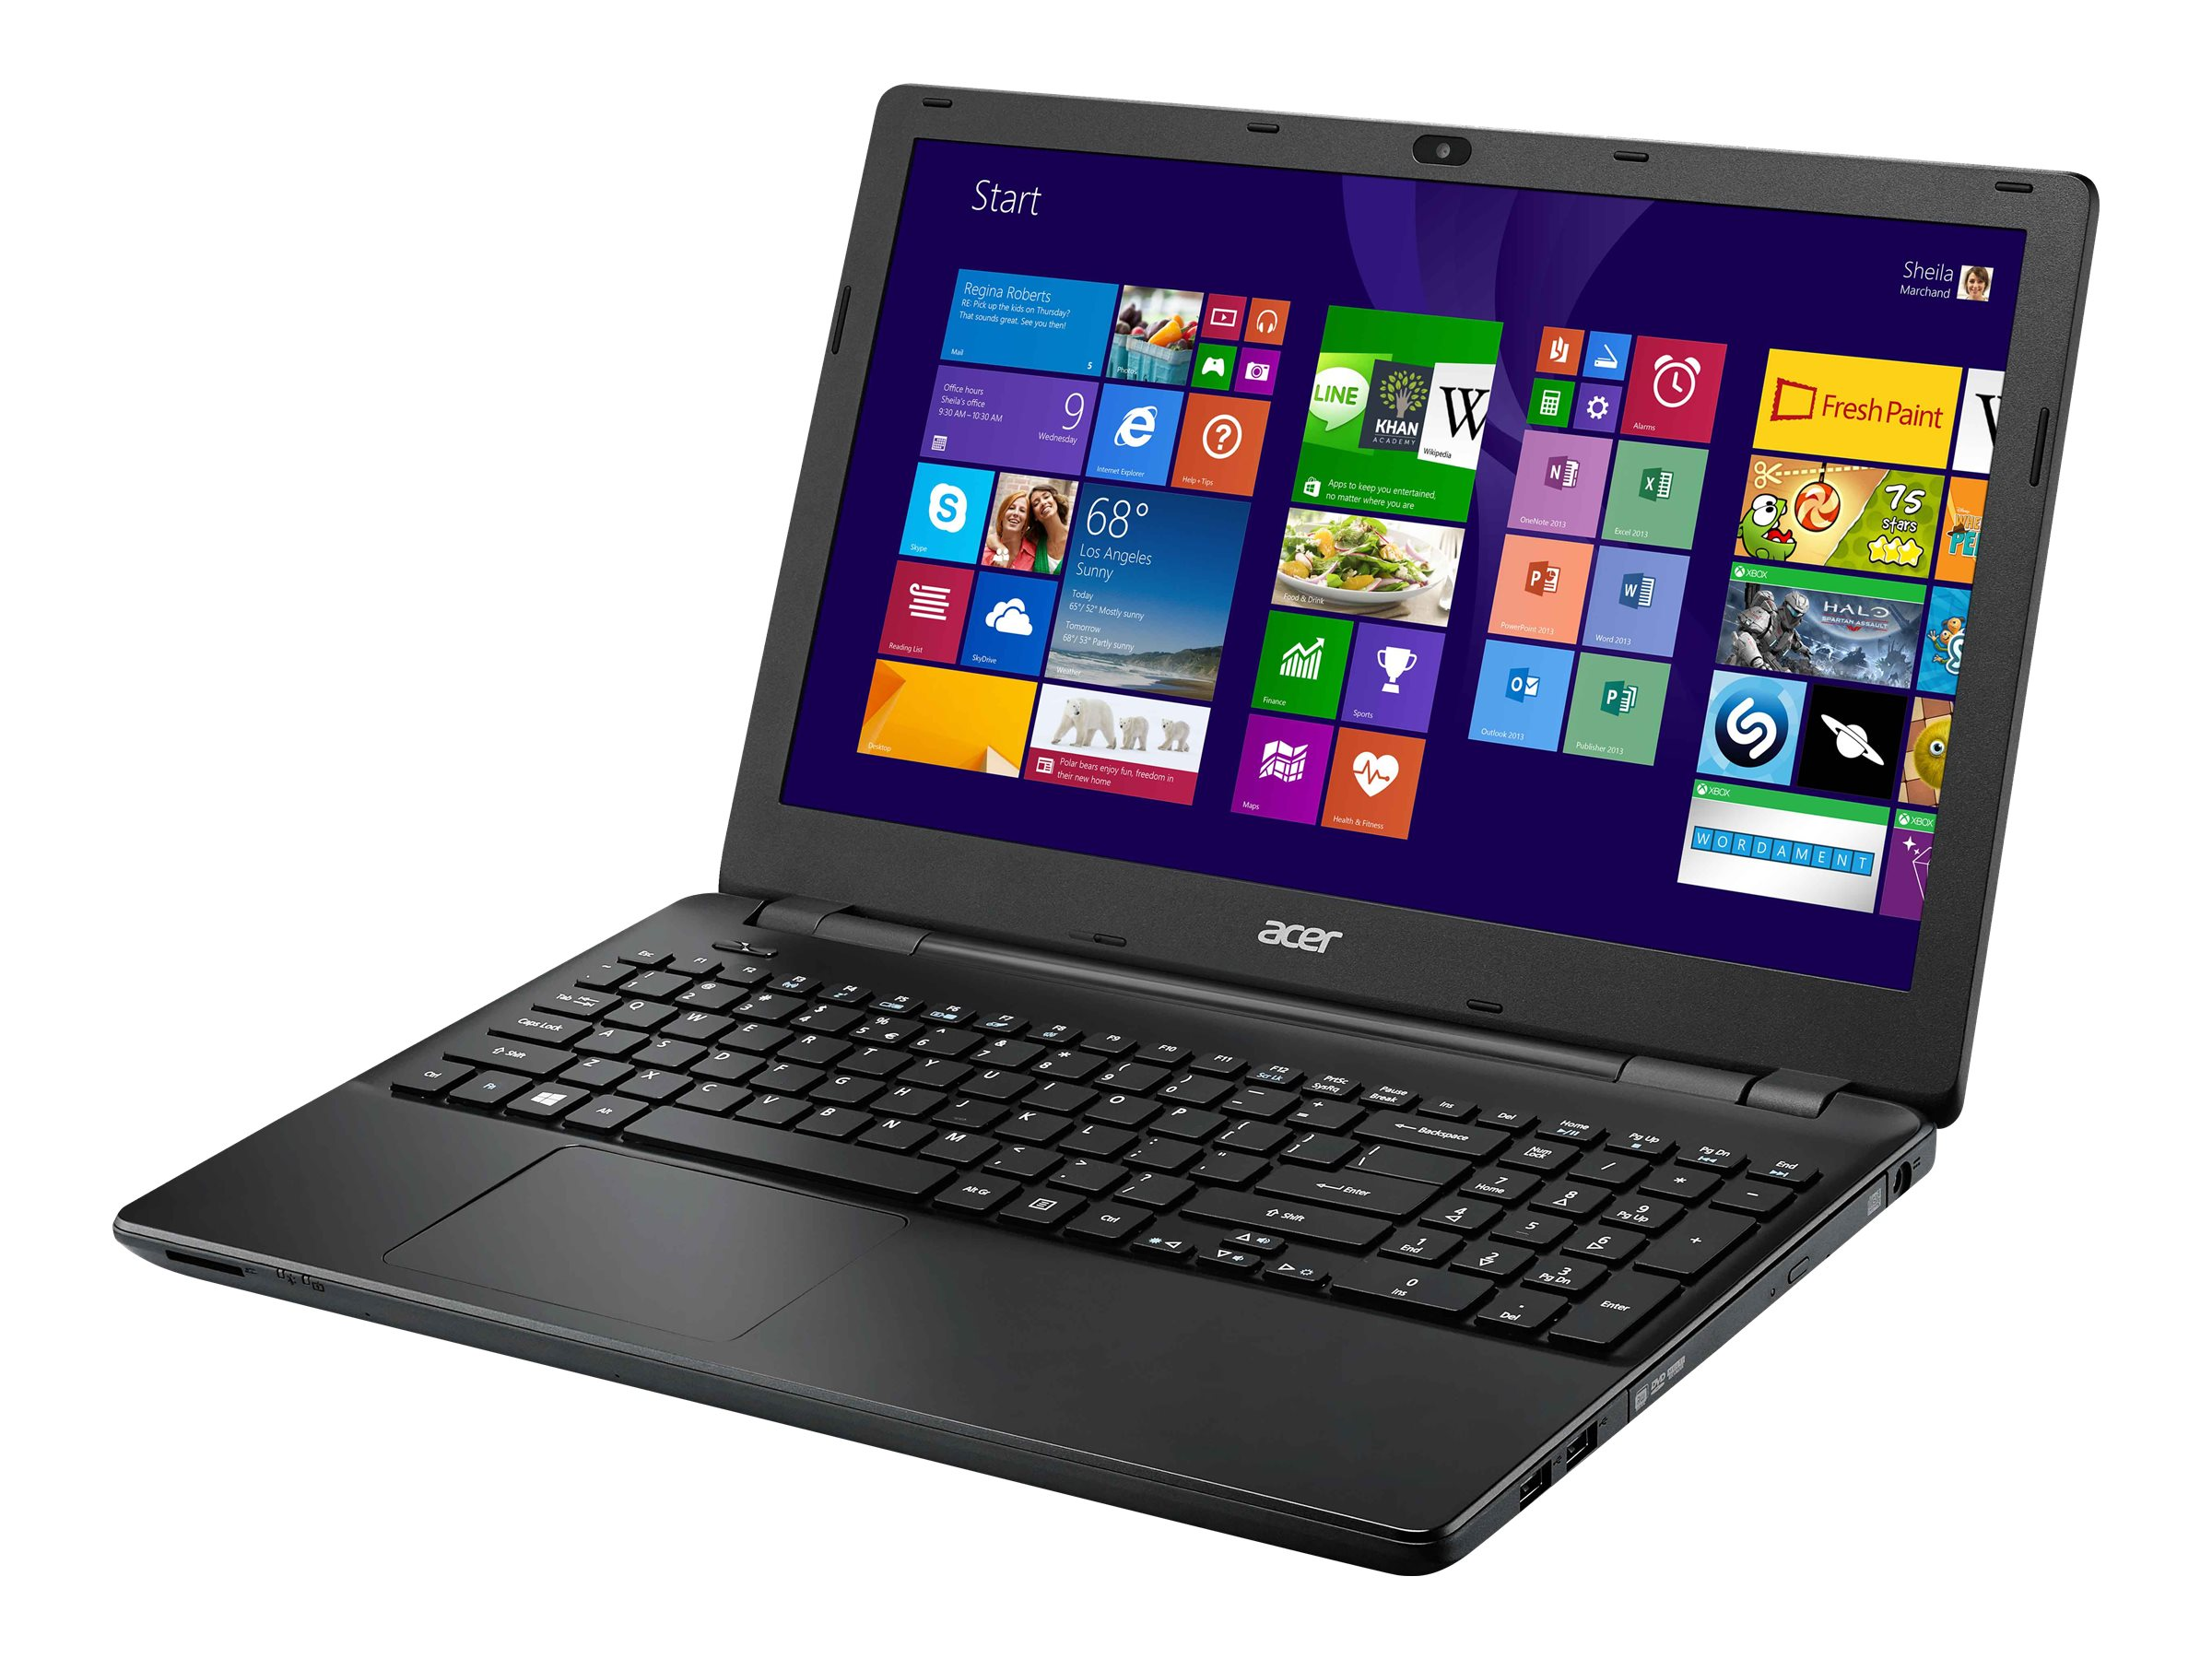 Acer Genuis Buy TravelMate P256-M-51Q1 1.7GHz Core i5 15.6in display, NX.V9MAA.006, 17771565, Notebooks